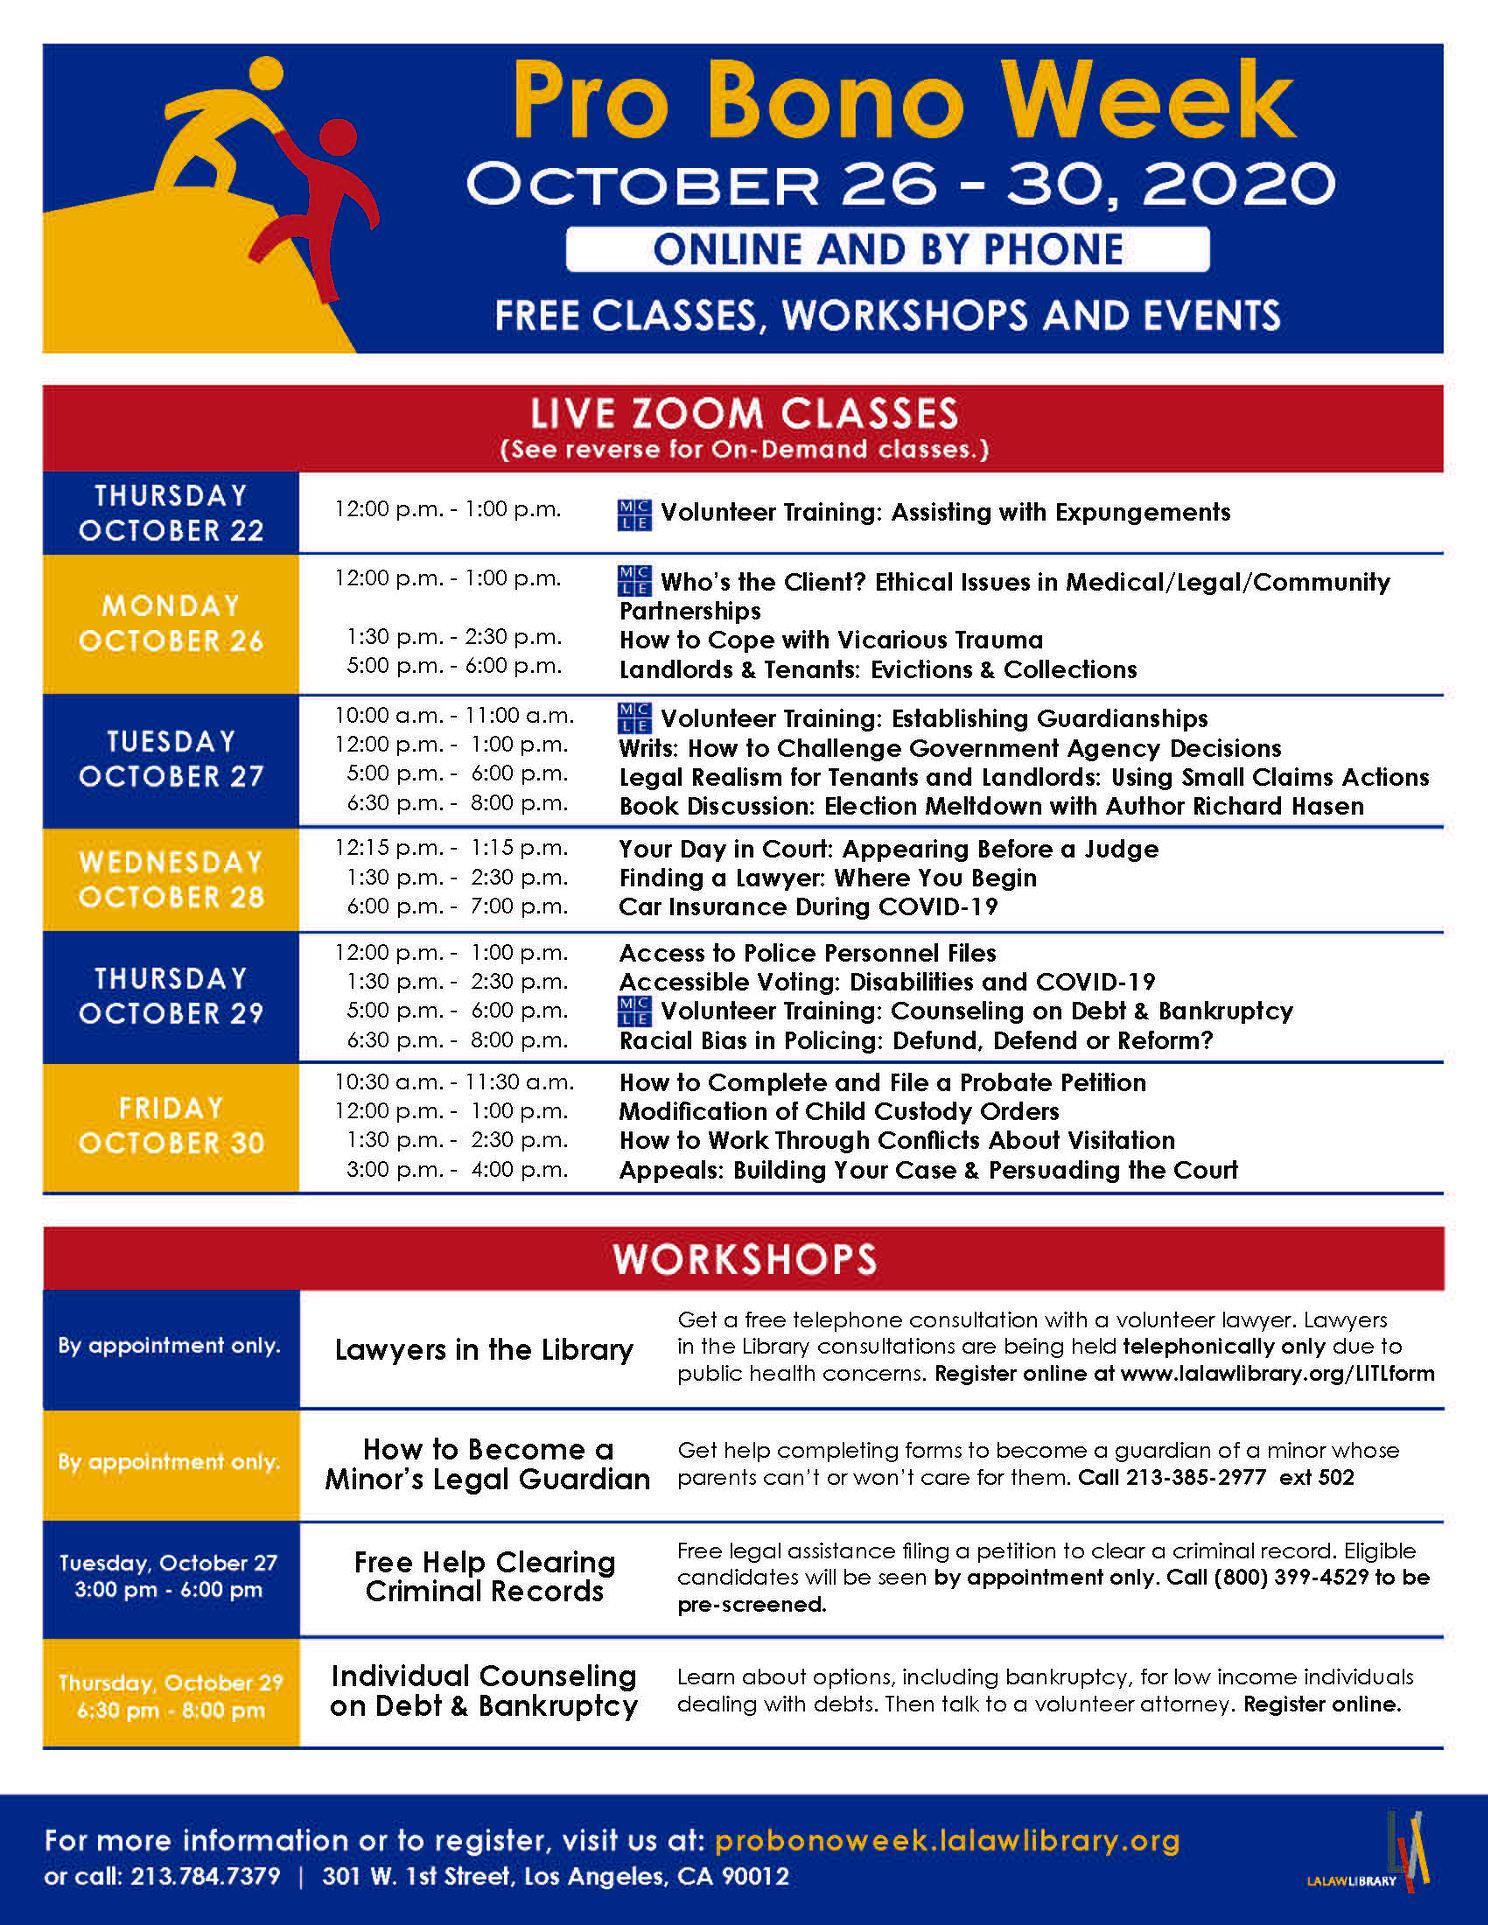 Annual Pro Bono Week Free Legal Fair